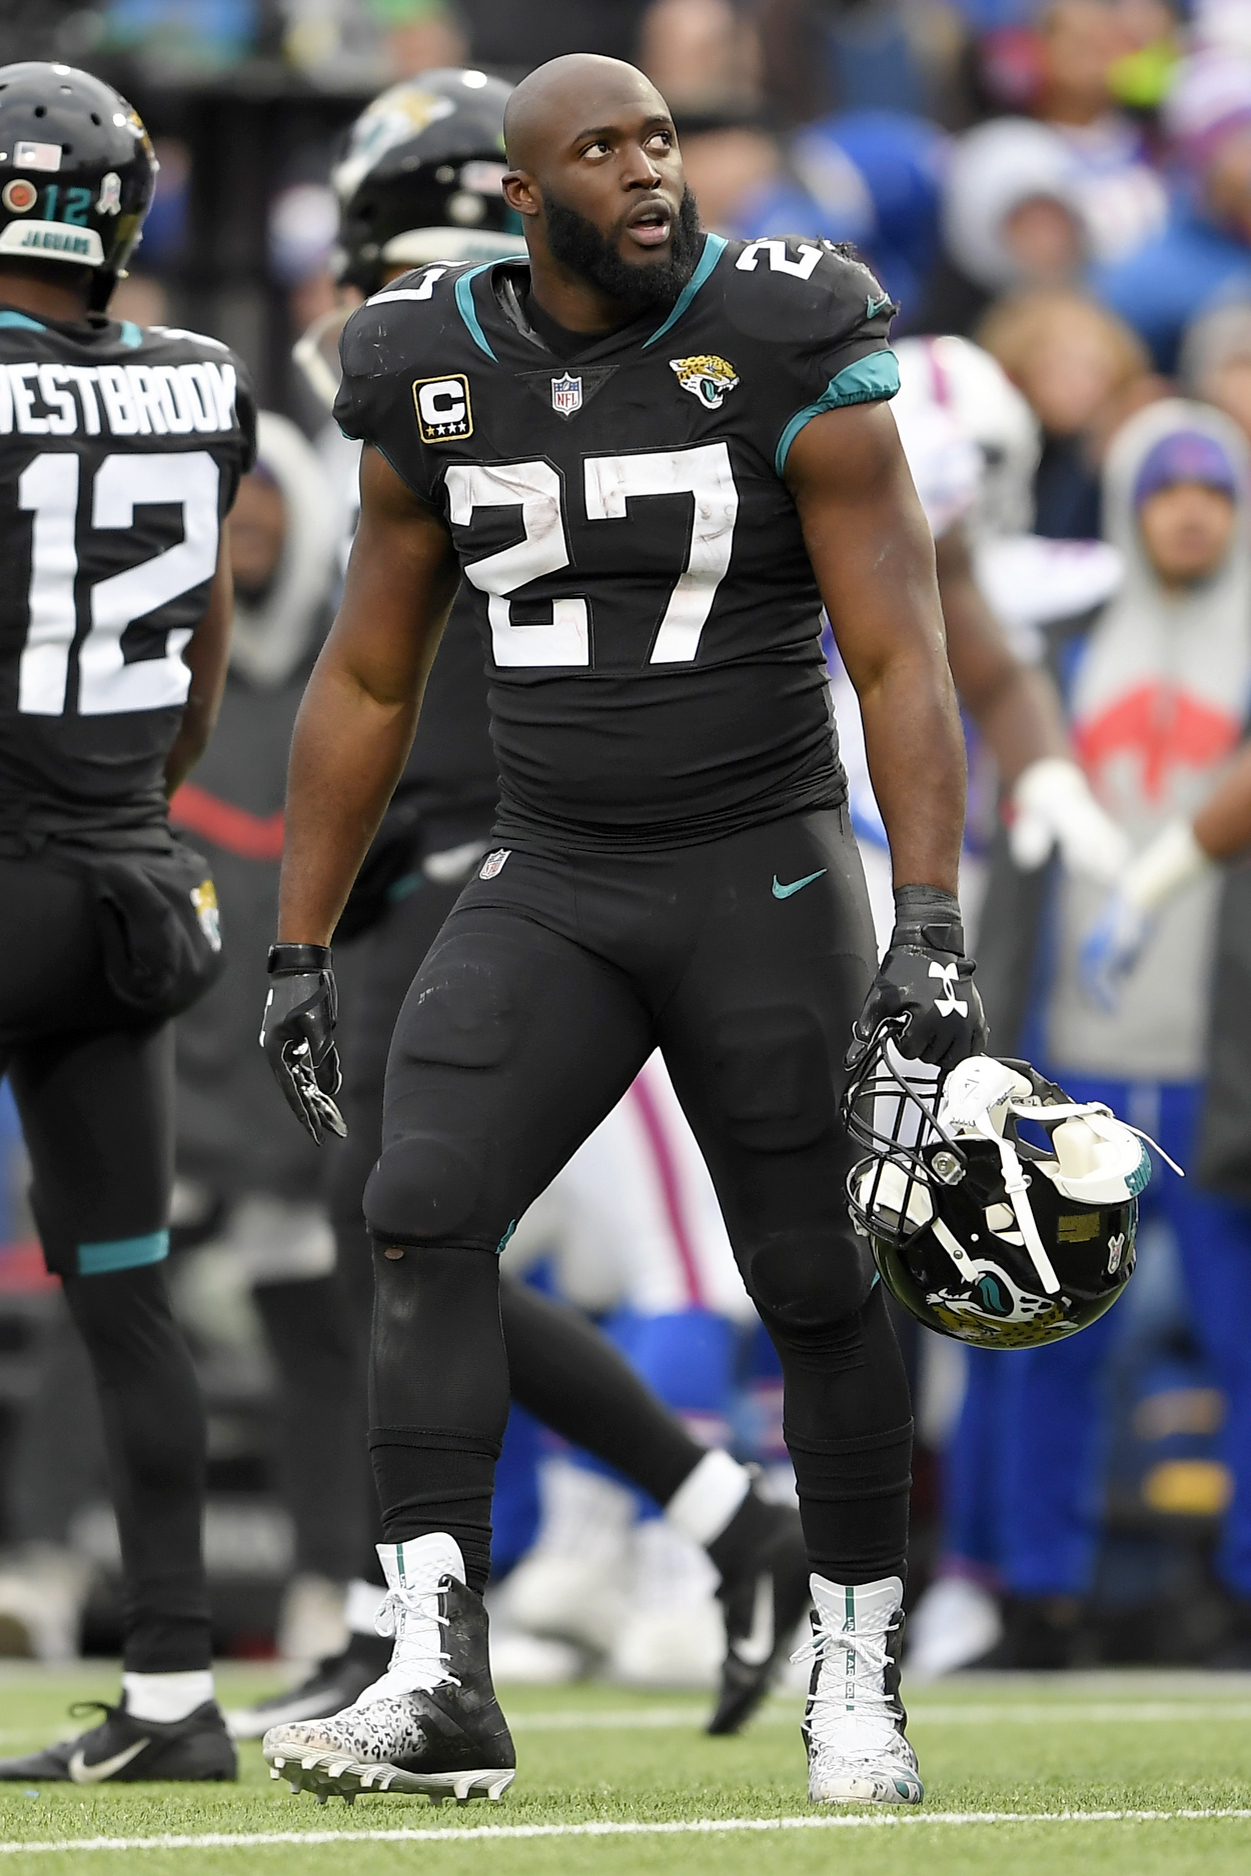 NFL suspends Jags running back Fournette 1 game for fight